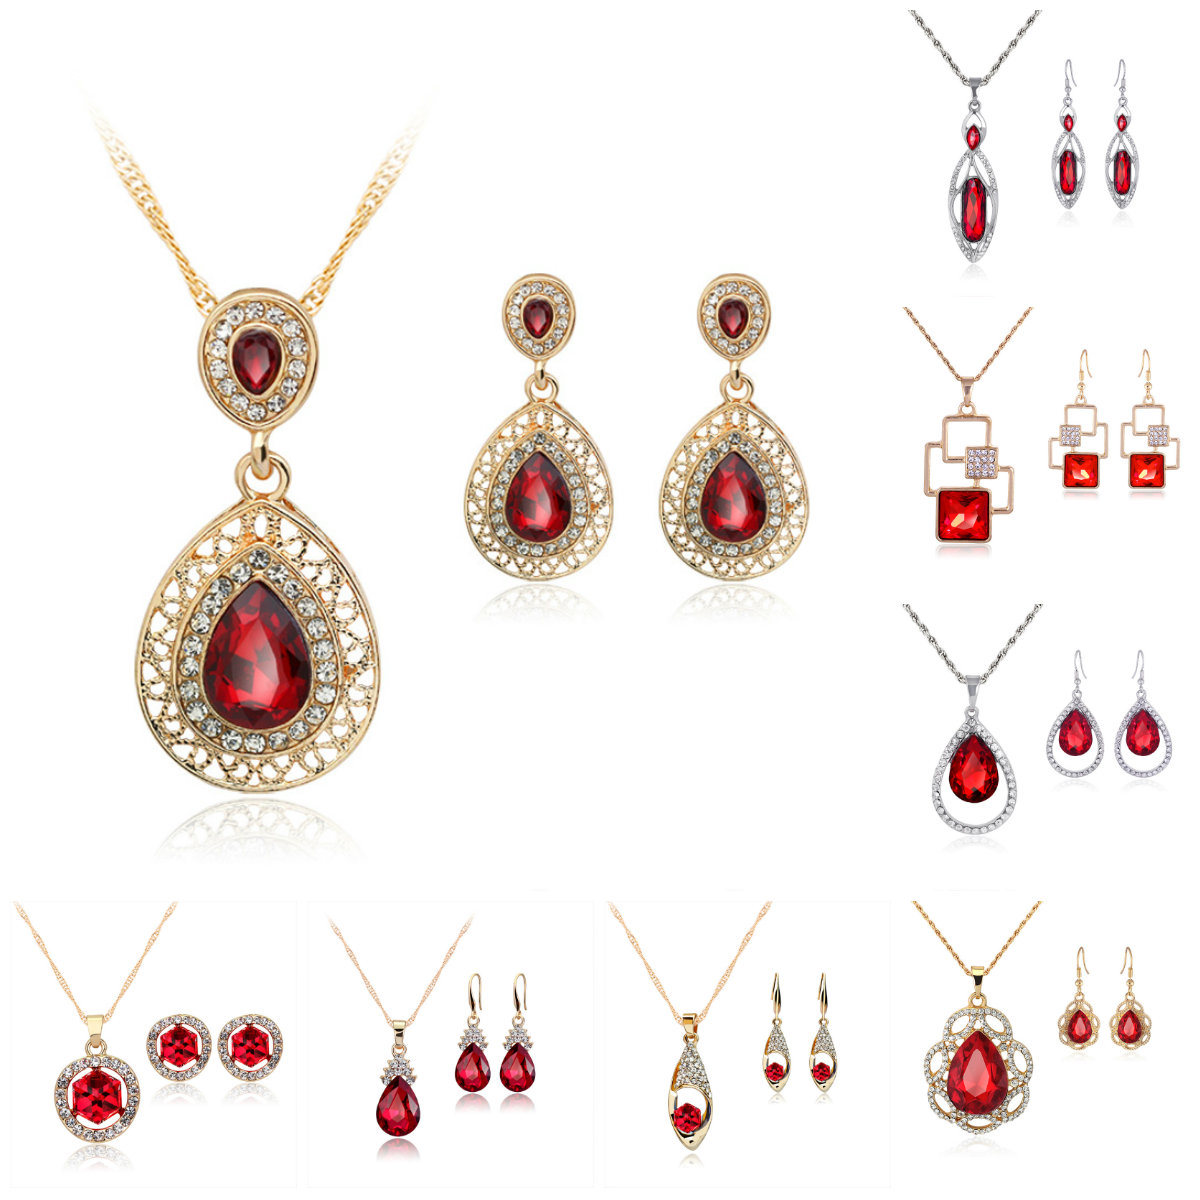 Wholesale Fashion Jewellery Set of Wedding Ring, Earring, Bracelet and Necklace in 925 Sterling Silver Fashion Jewelry Set (521853864603)